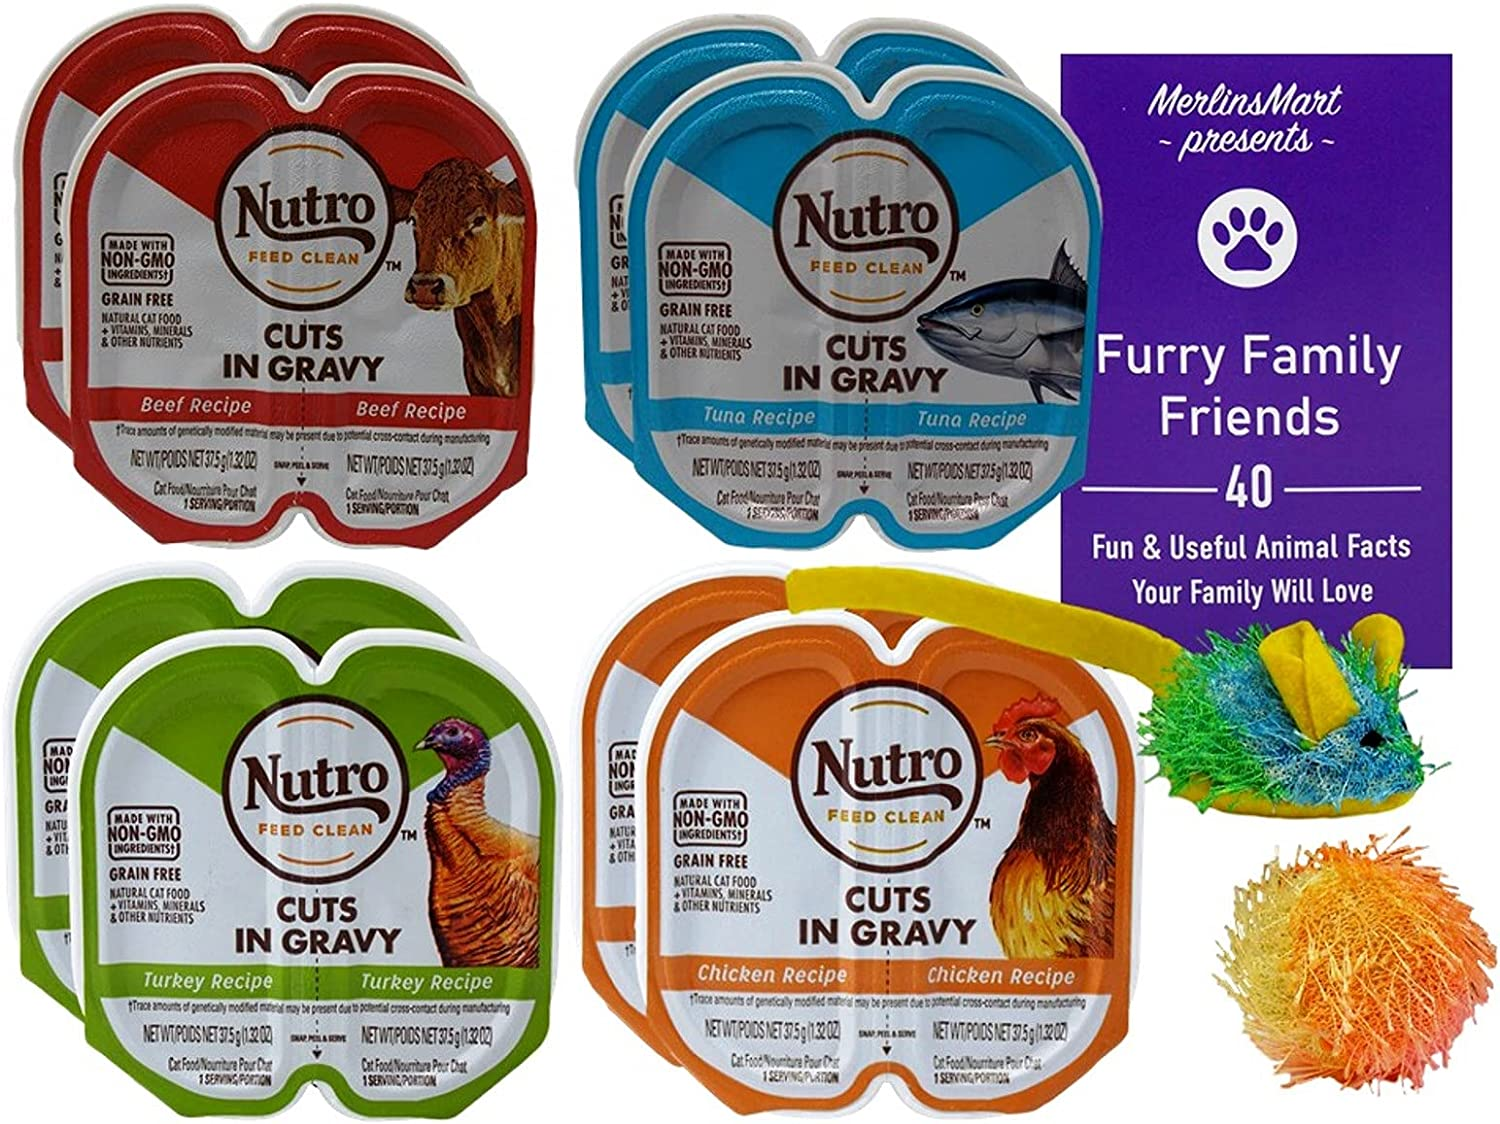 Nutro Feed Clean Grain Free Cuts in Gravy Cat Food 4 Flavor 8 Can Variety - (2) Each: Beef, Turkey, Chicken, Tuna (2.6 Ounces) Plus 2 Catnip Toys and Fun Facts Booklet Bundle